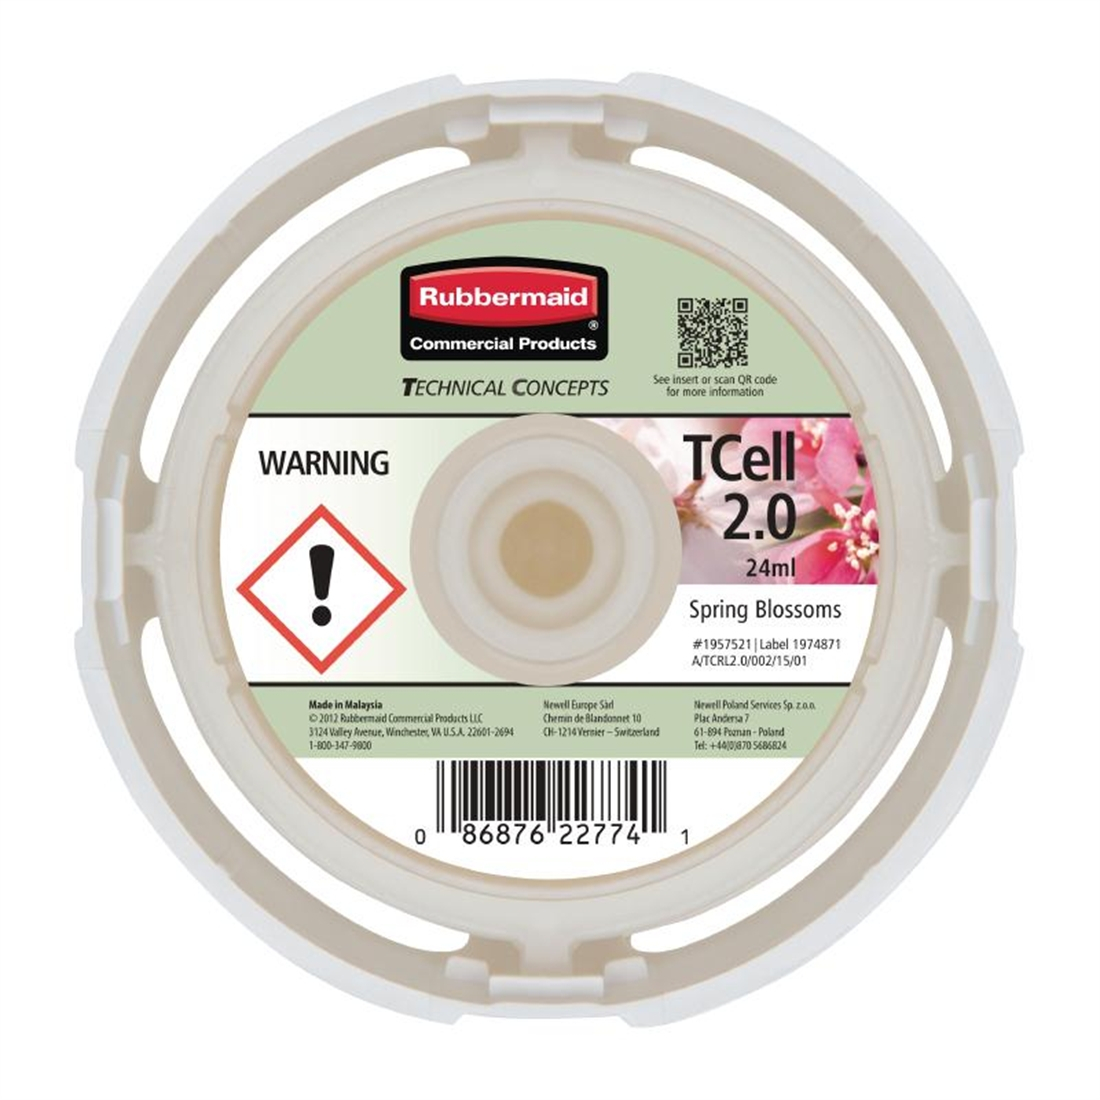 Rubbermaid TCell 2.0 Refill Spring Blossoms